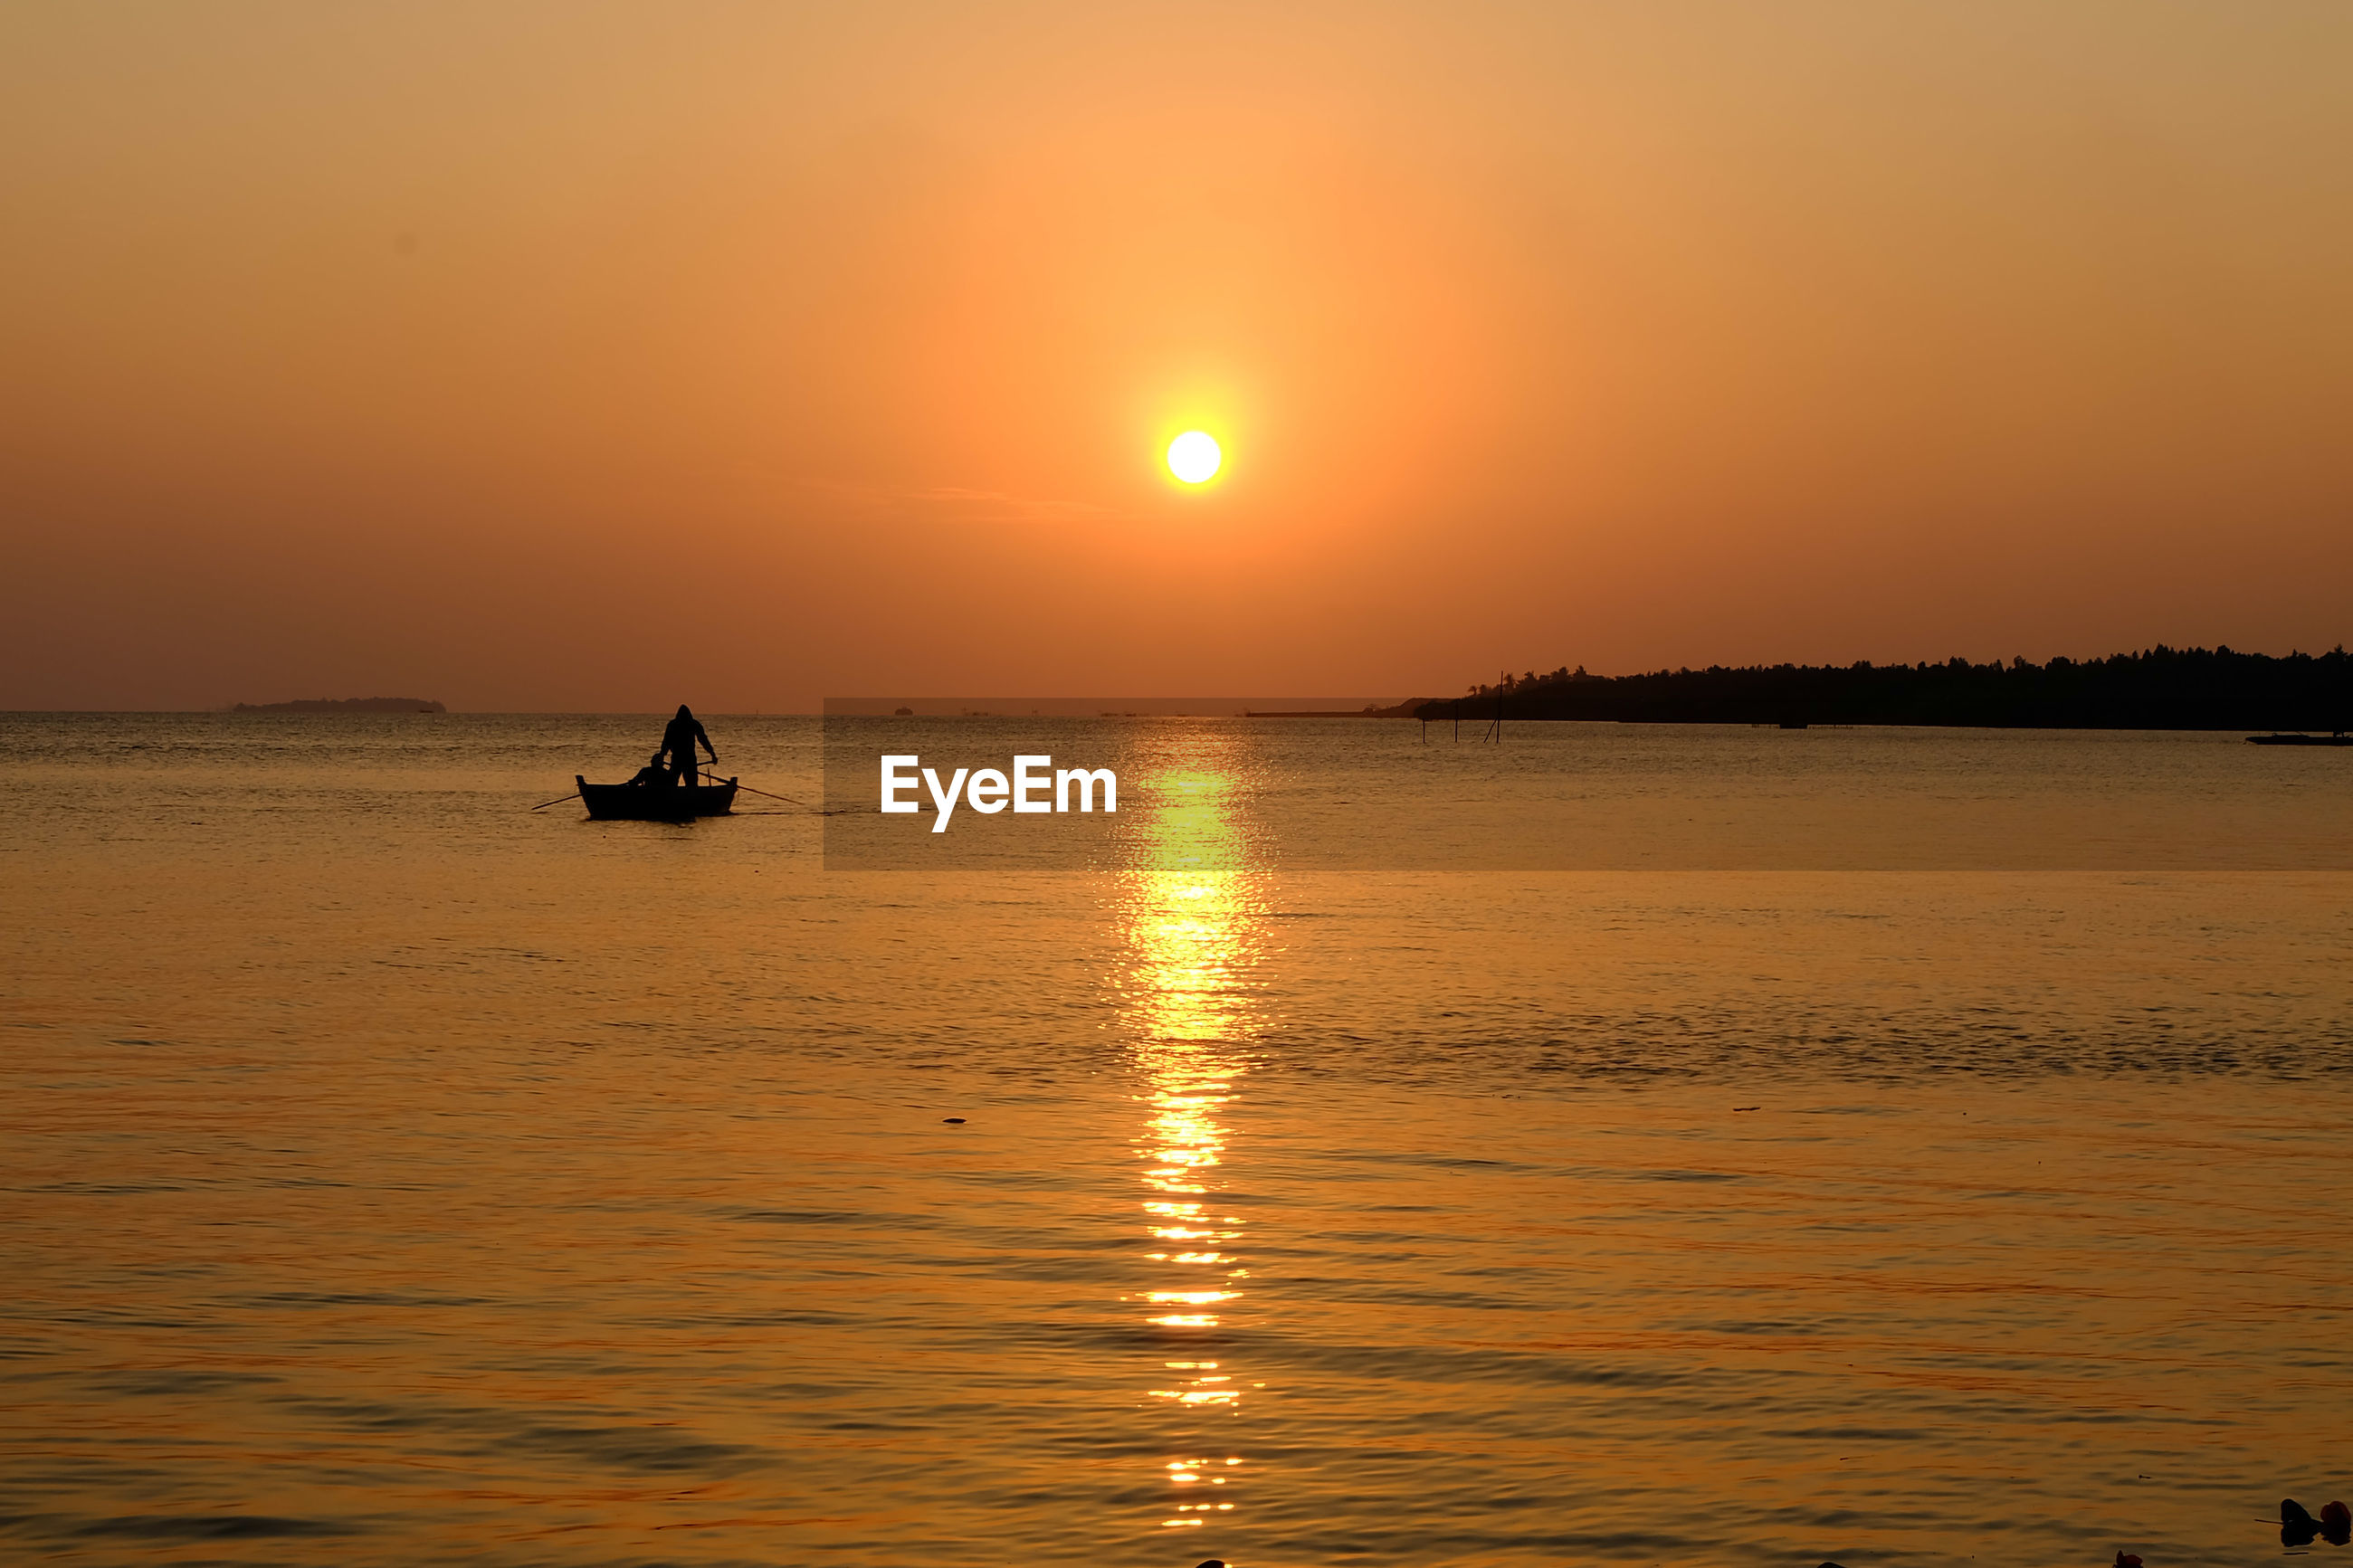 Scenic view of two people on boat with sunset over sea